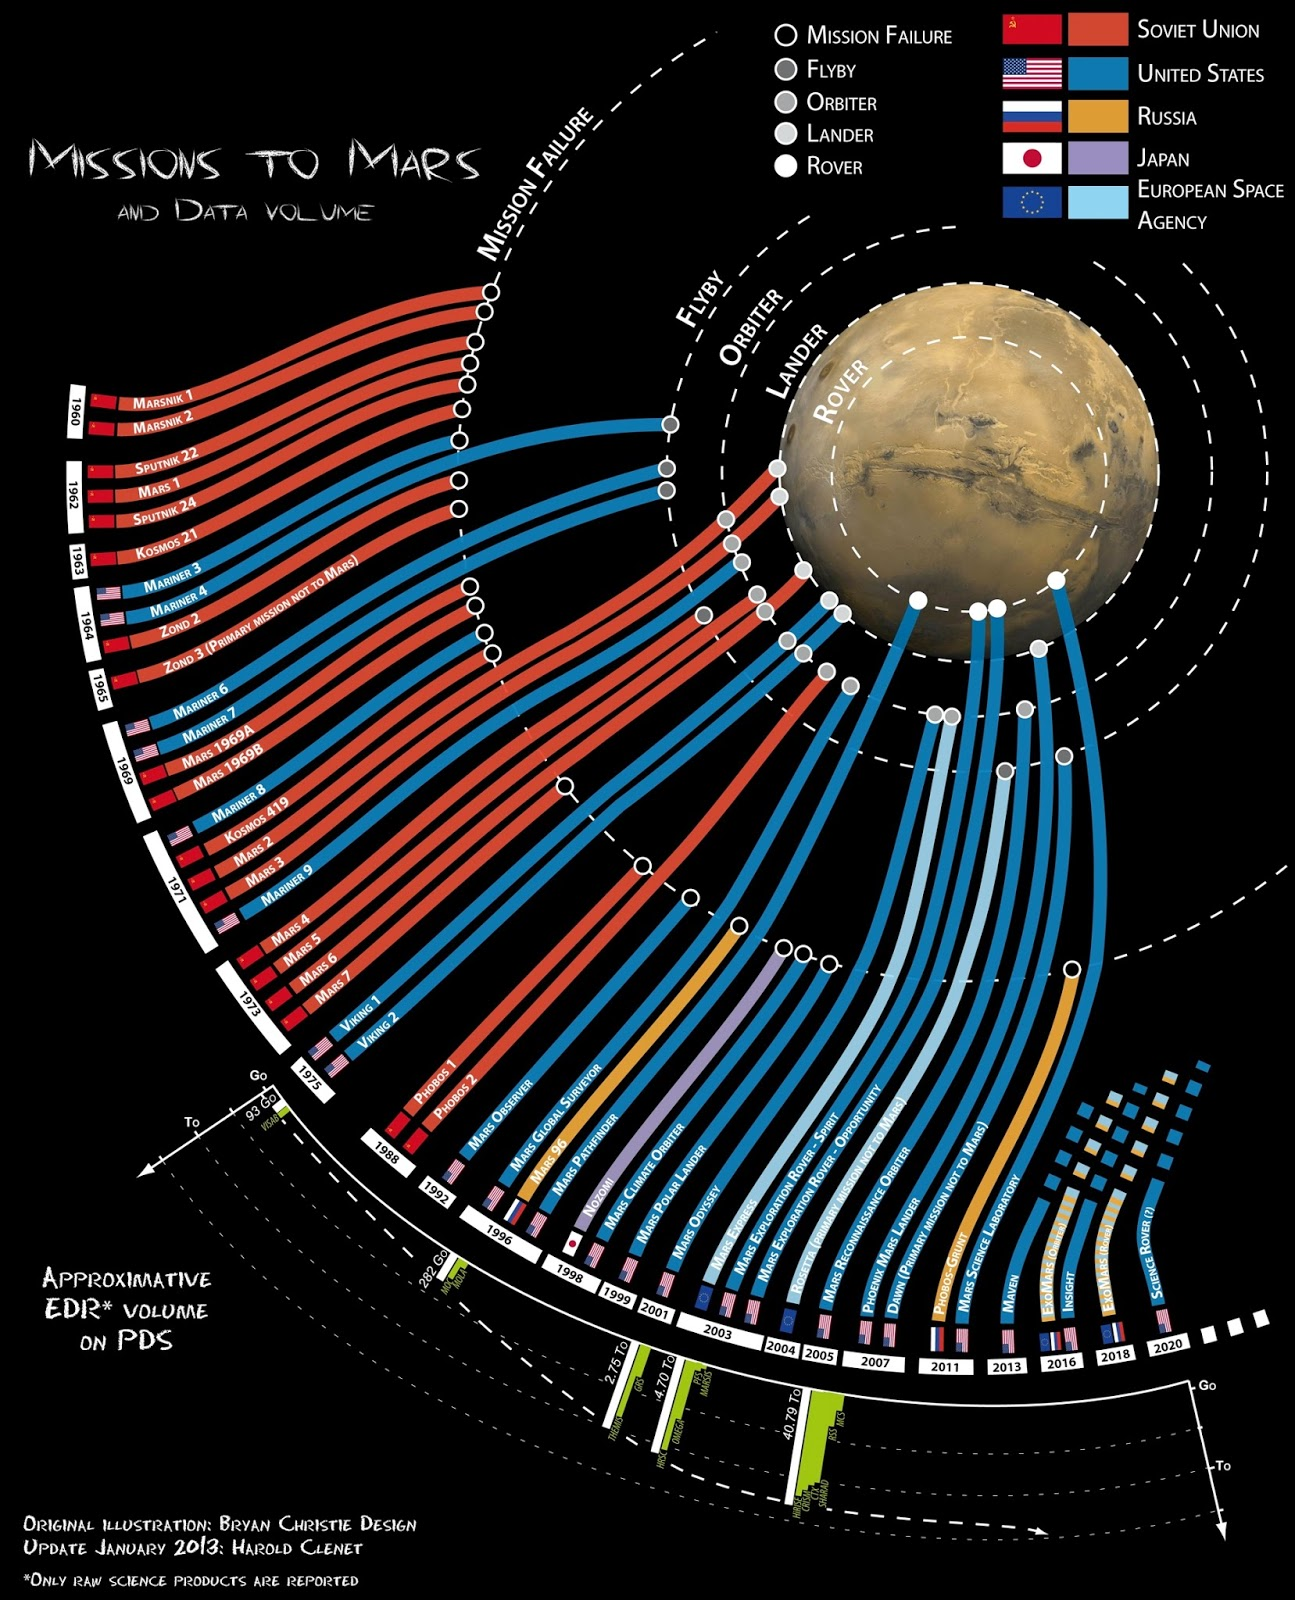 Infographic: Missions to Mars